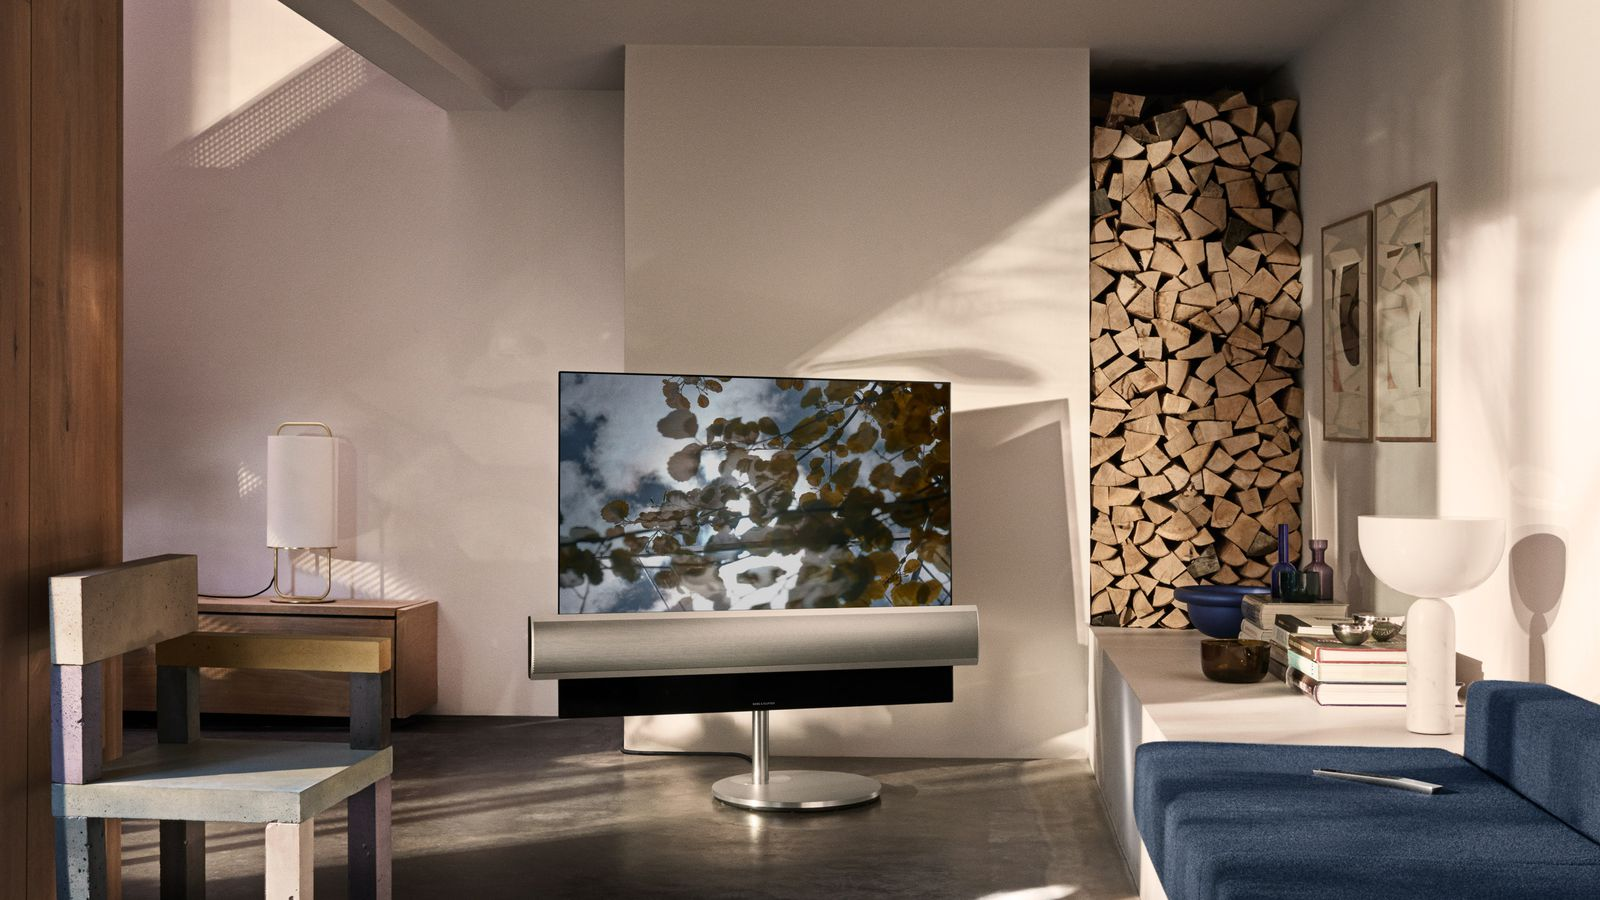 bang olufsen teams up with lg on this stunning oled television the verge. Black Bedroom Furniture Sets. Home Design Ideas